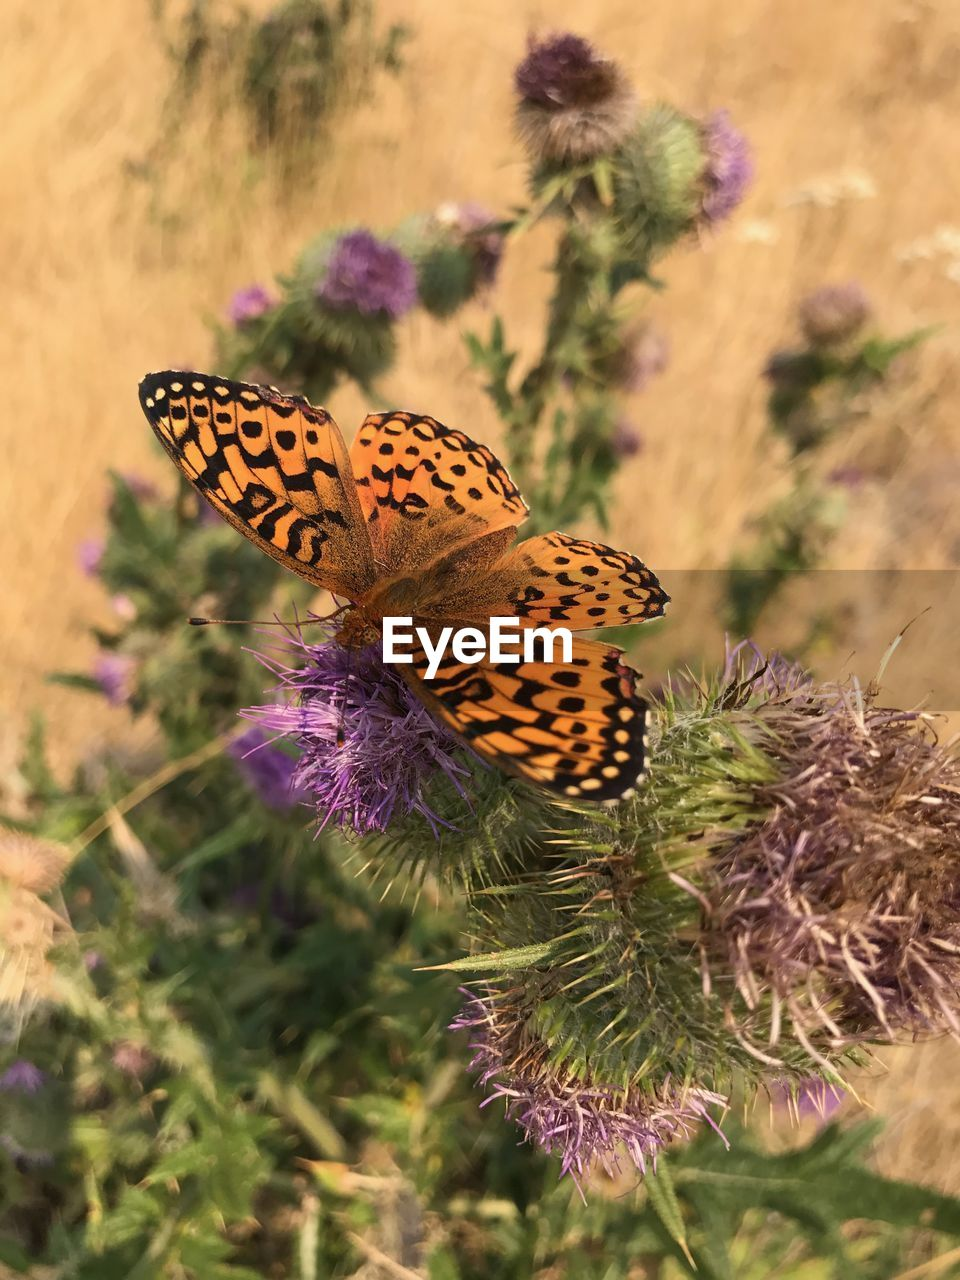 insect, nature, butterfly - insect, one animal, animals in the wild, focus on foreground, animal themes, plant, beauty in nature, purple, no people, butterfly, close-up, day, flower, fragility, outdoors, growth, flower head, pollination, freshness, perching